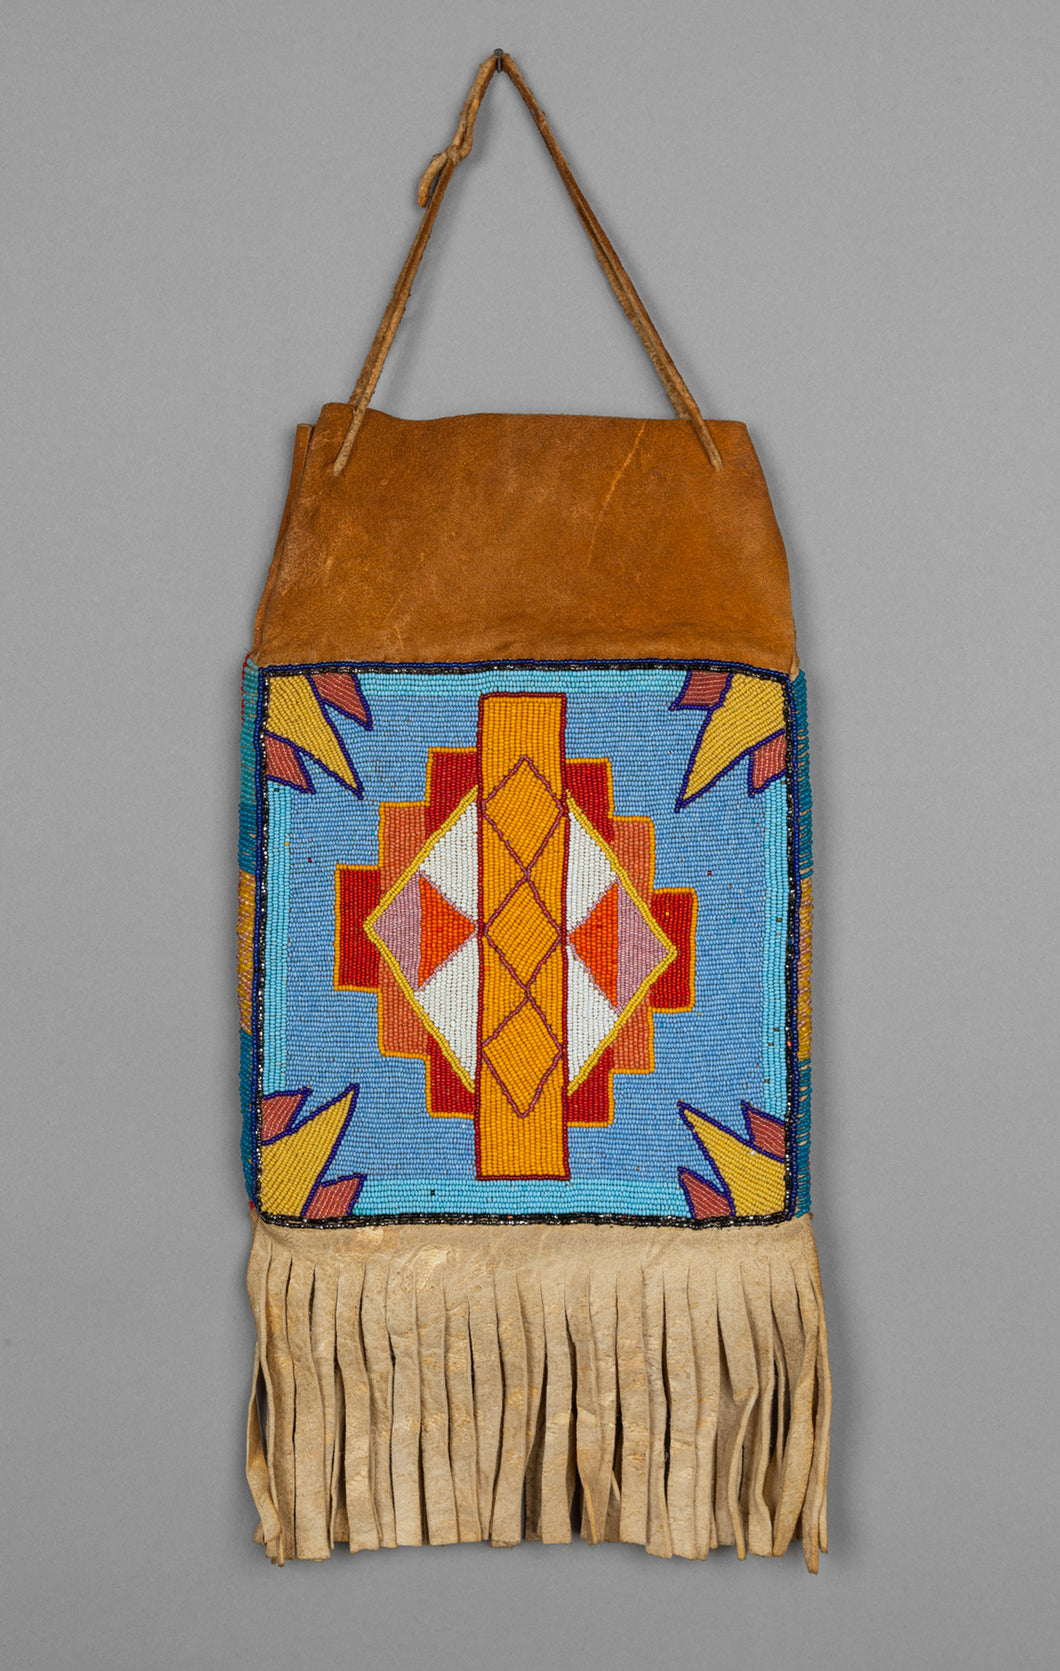 Two Sided Plateau Beaded Bag with Geometric Designs, c. 1950